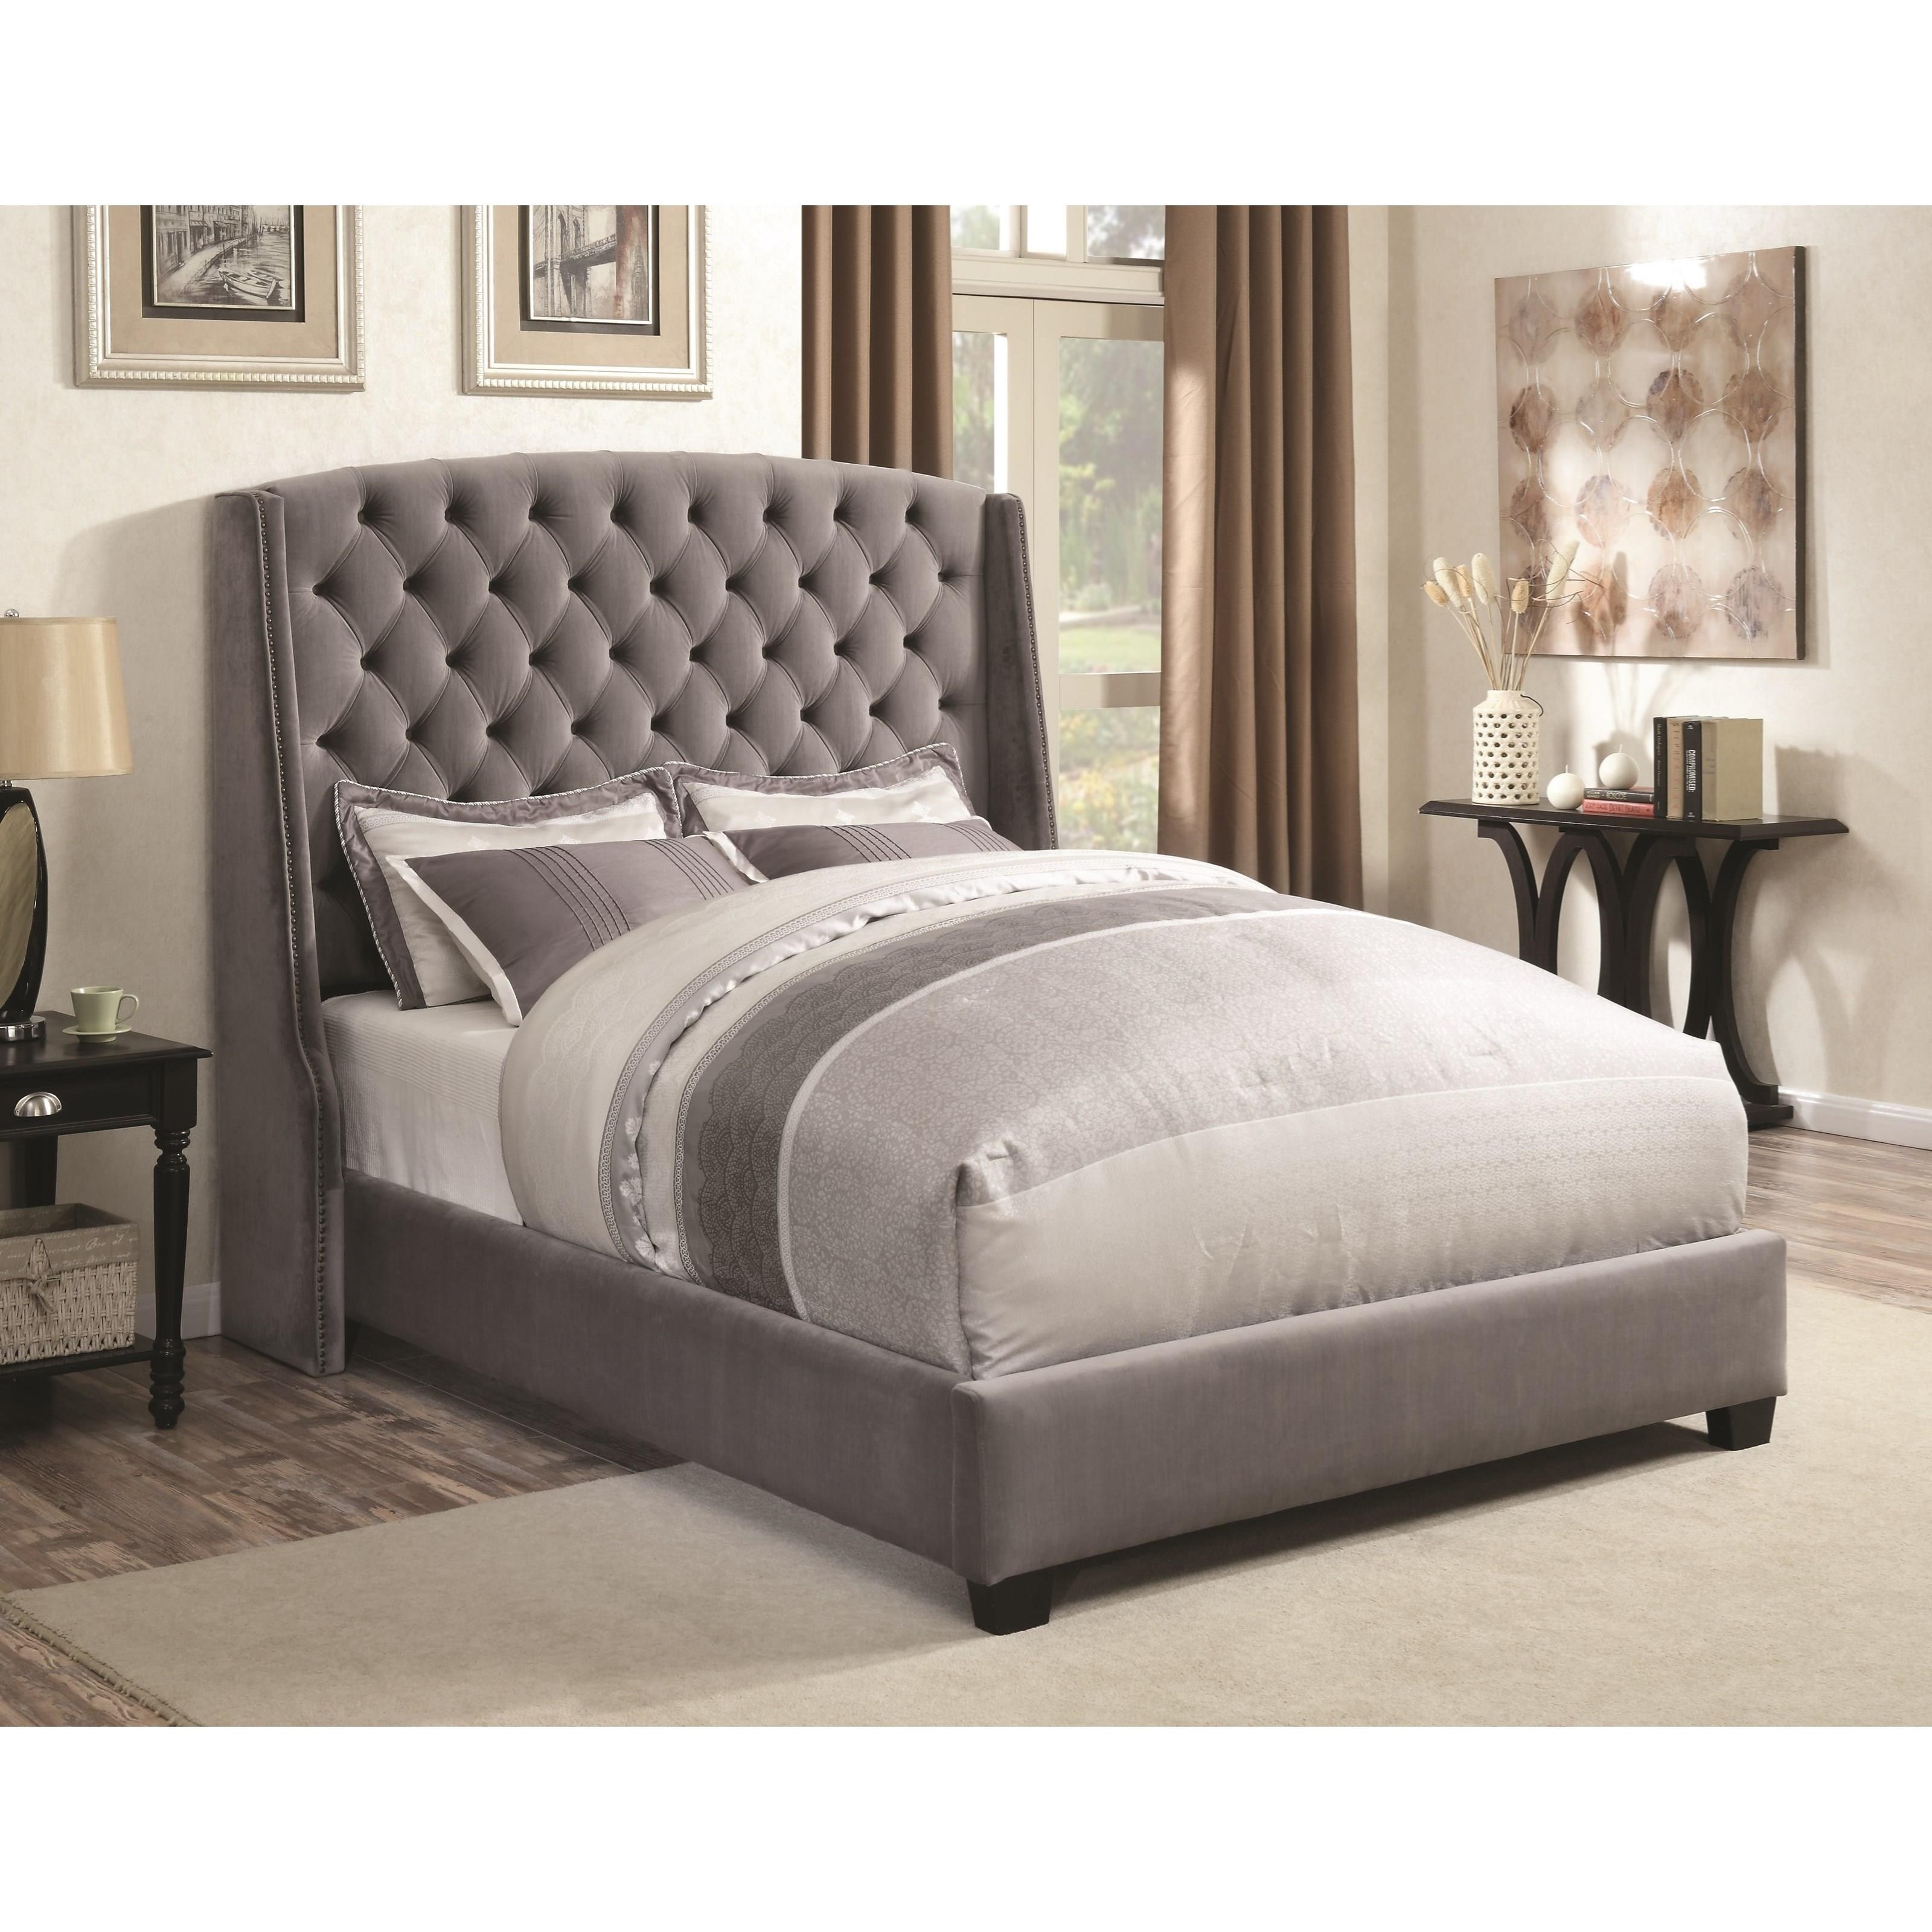 Upholstered Beds Pissarro King Bed by Coaster at Northeast Factory Direct